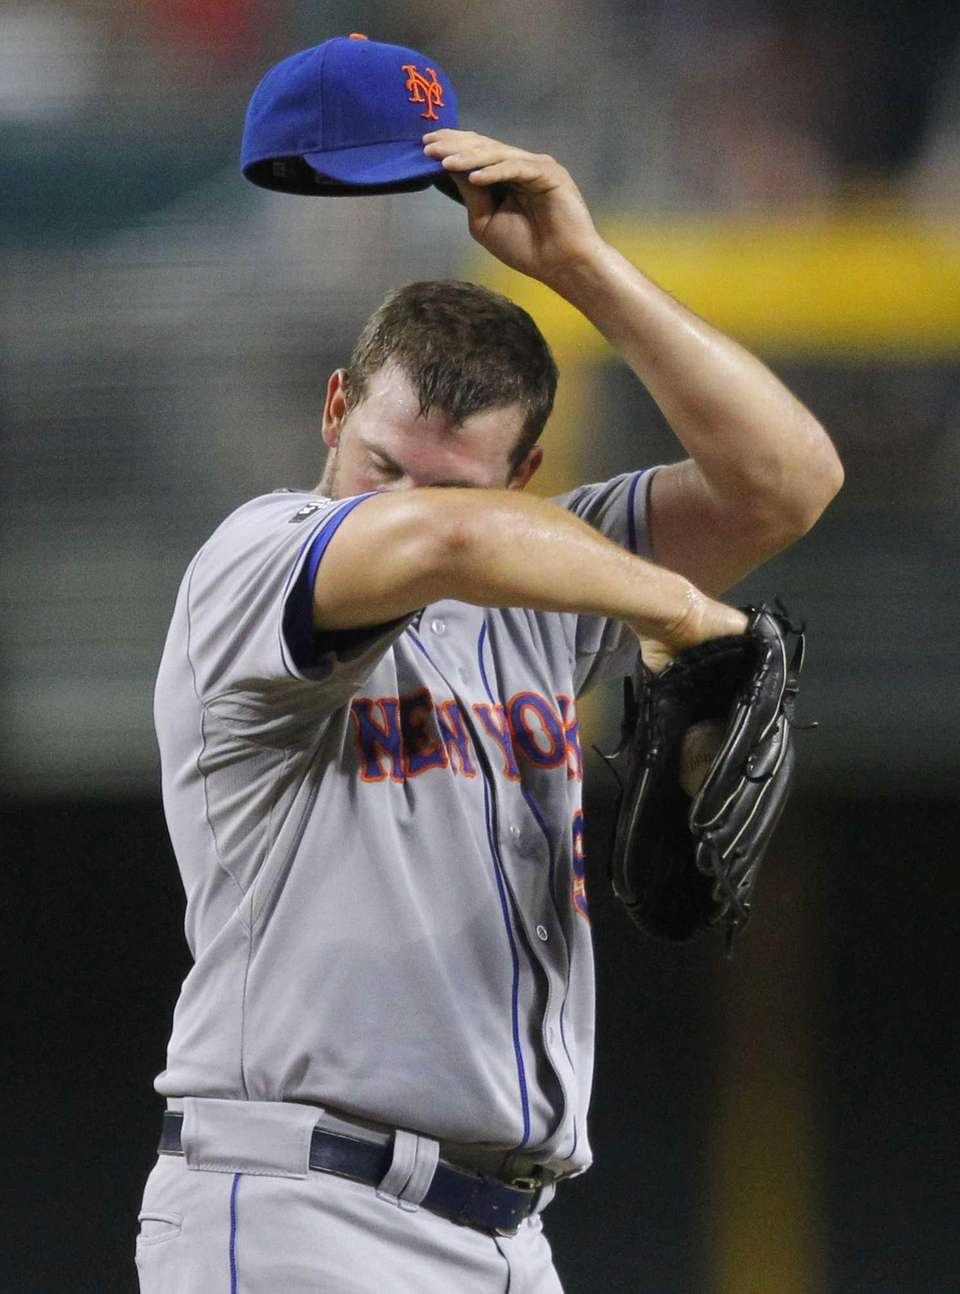 Mets pitcher Jonathon Niese wipes his face after